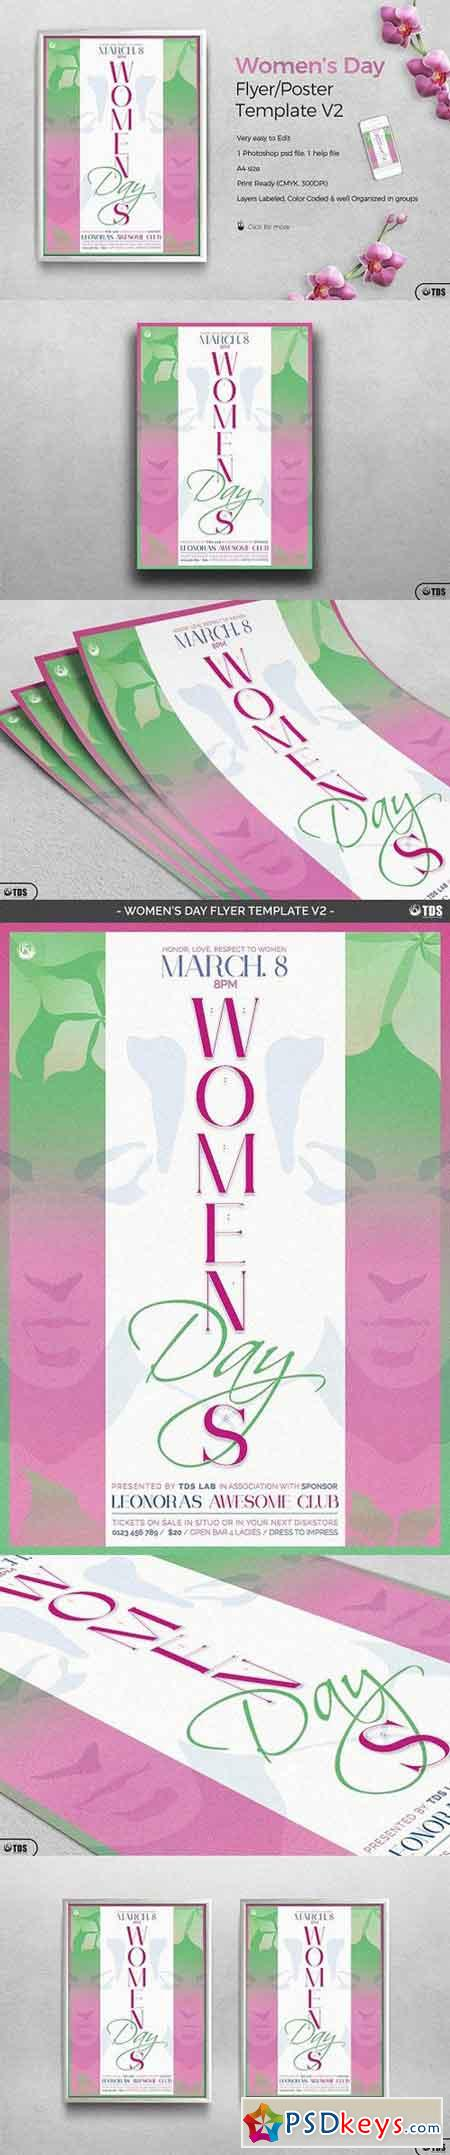 Womens Day Flyer Template V2 1235209